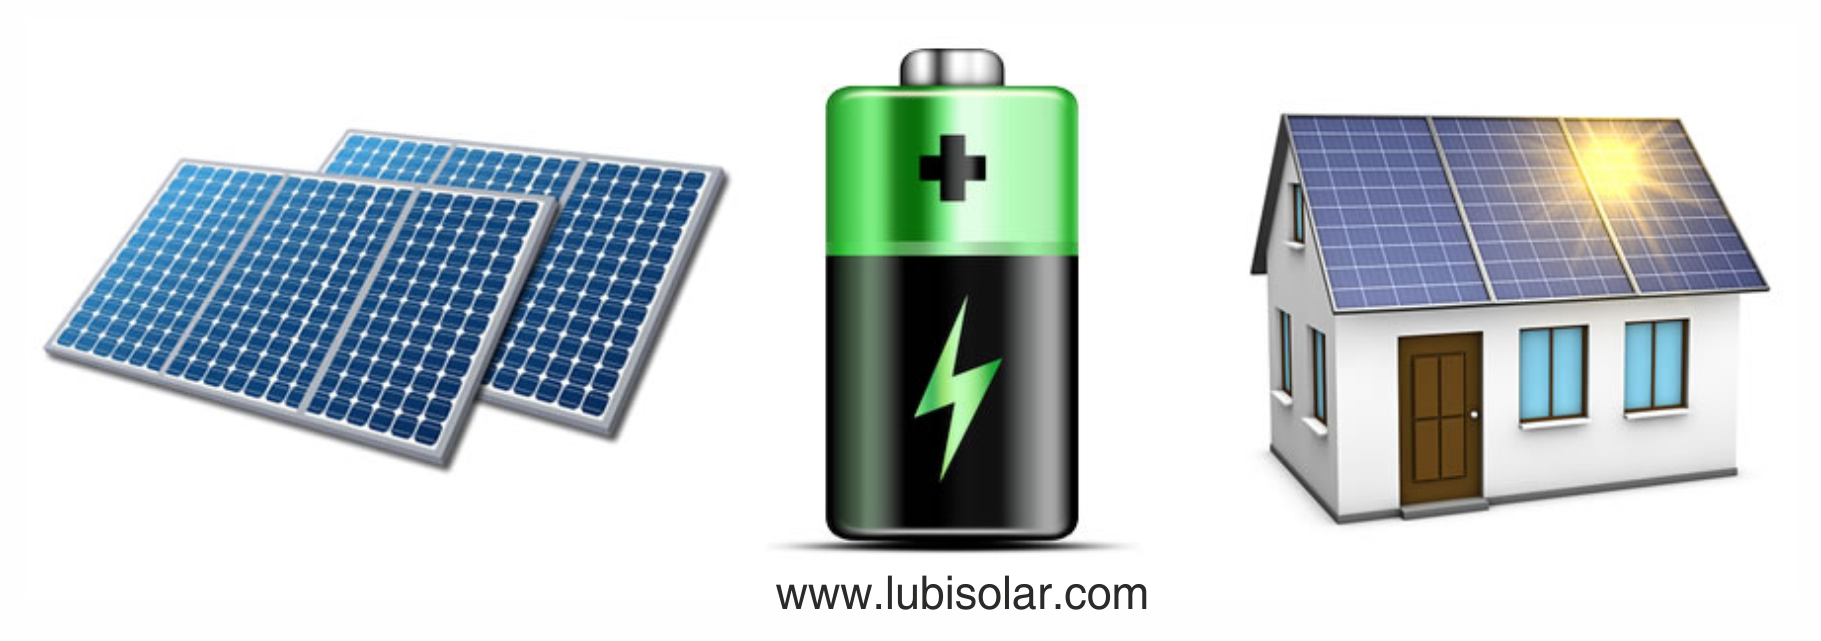 Energy Storage: Potential Downfalls